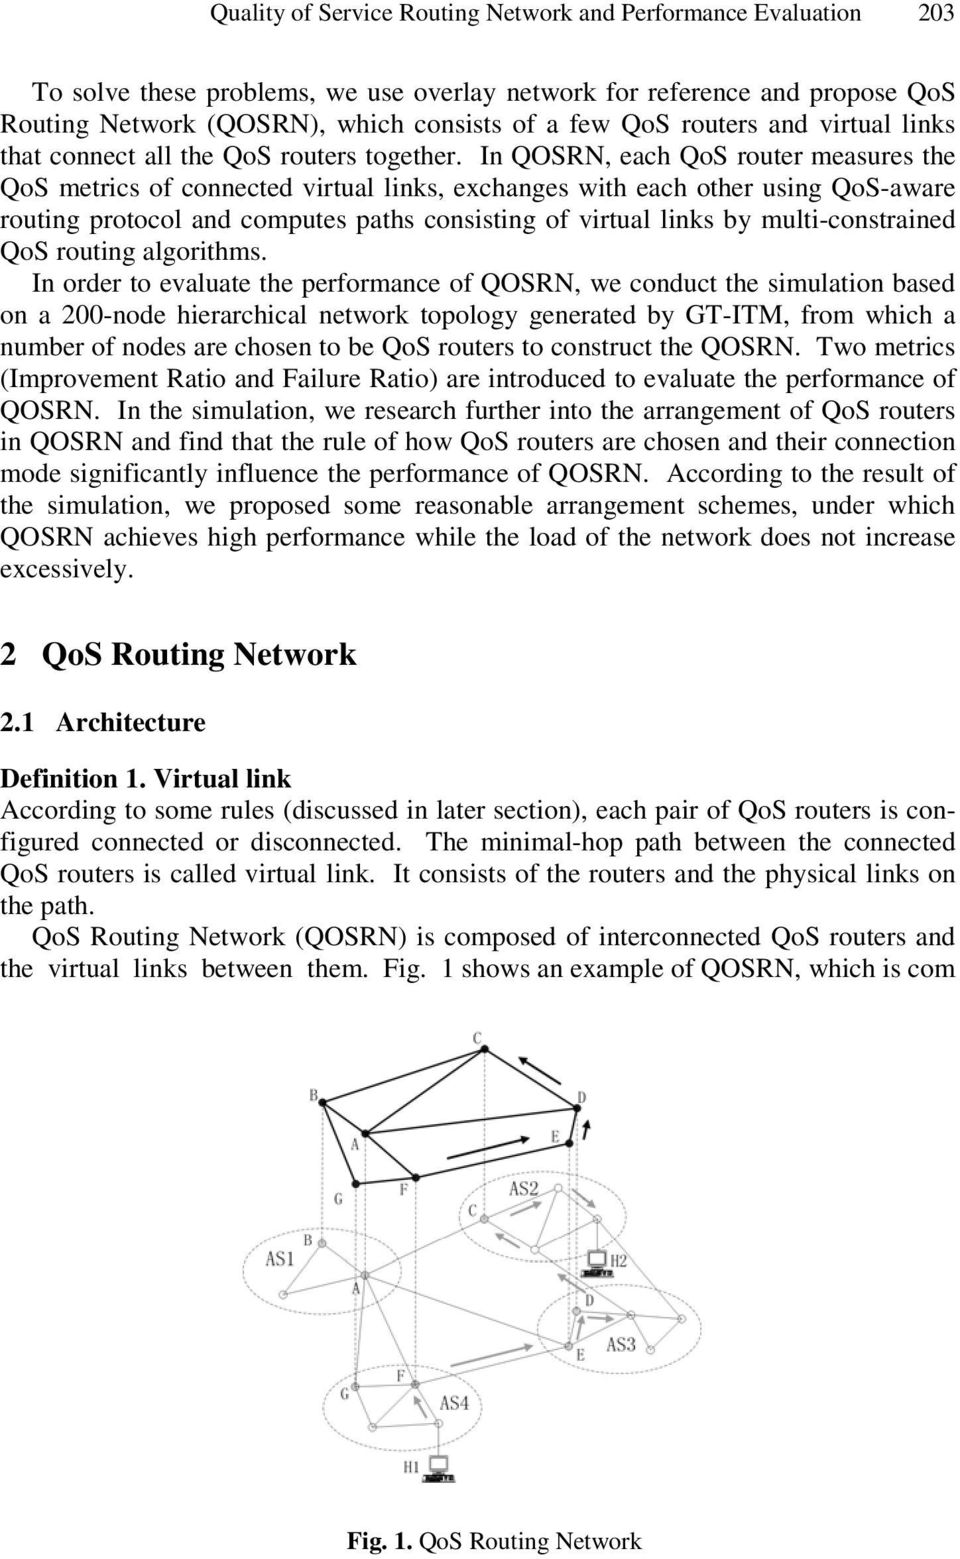 In QOSRN, each QoS router measures the QoS metrics of connected virtual links, exchanges with each other using QoS-aware routing protocol and computes paths consisting of virtual links by